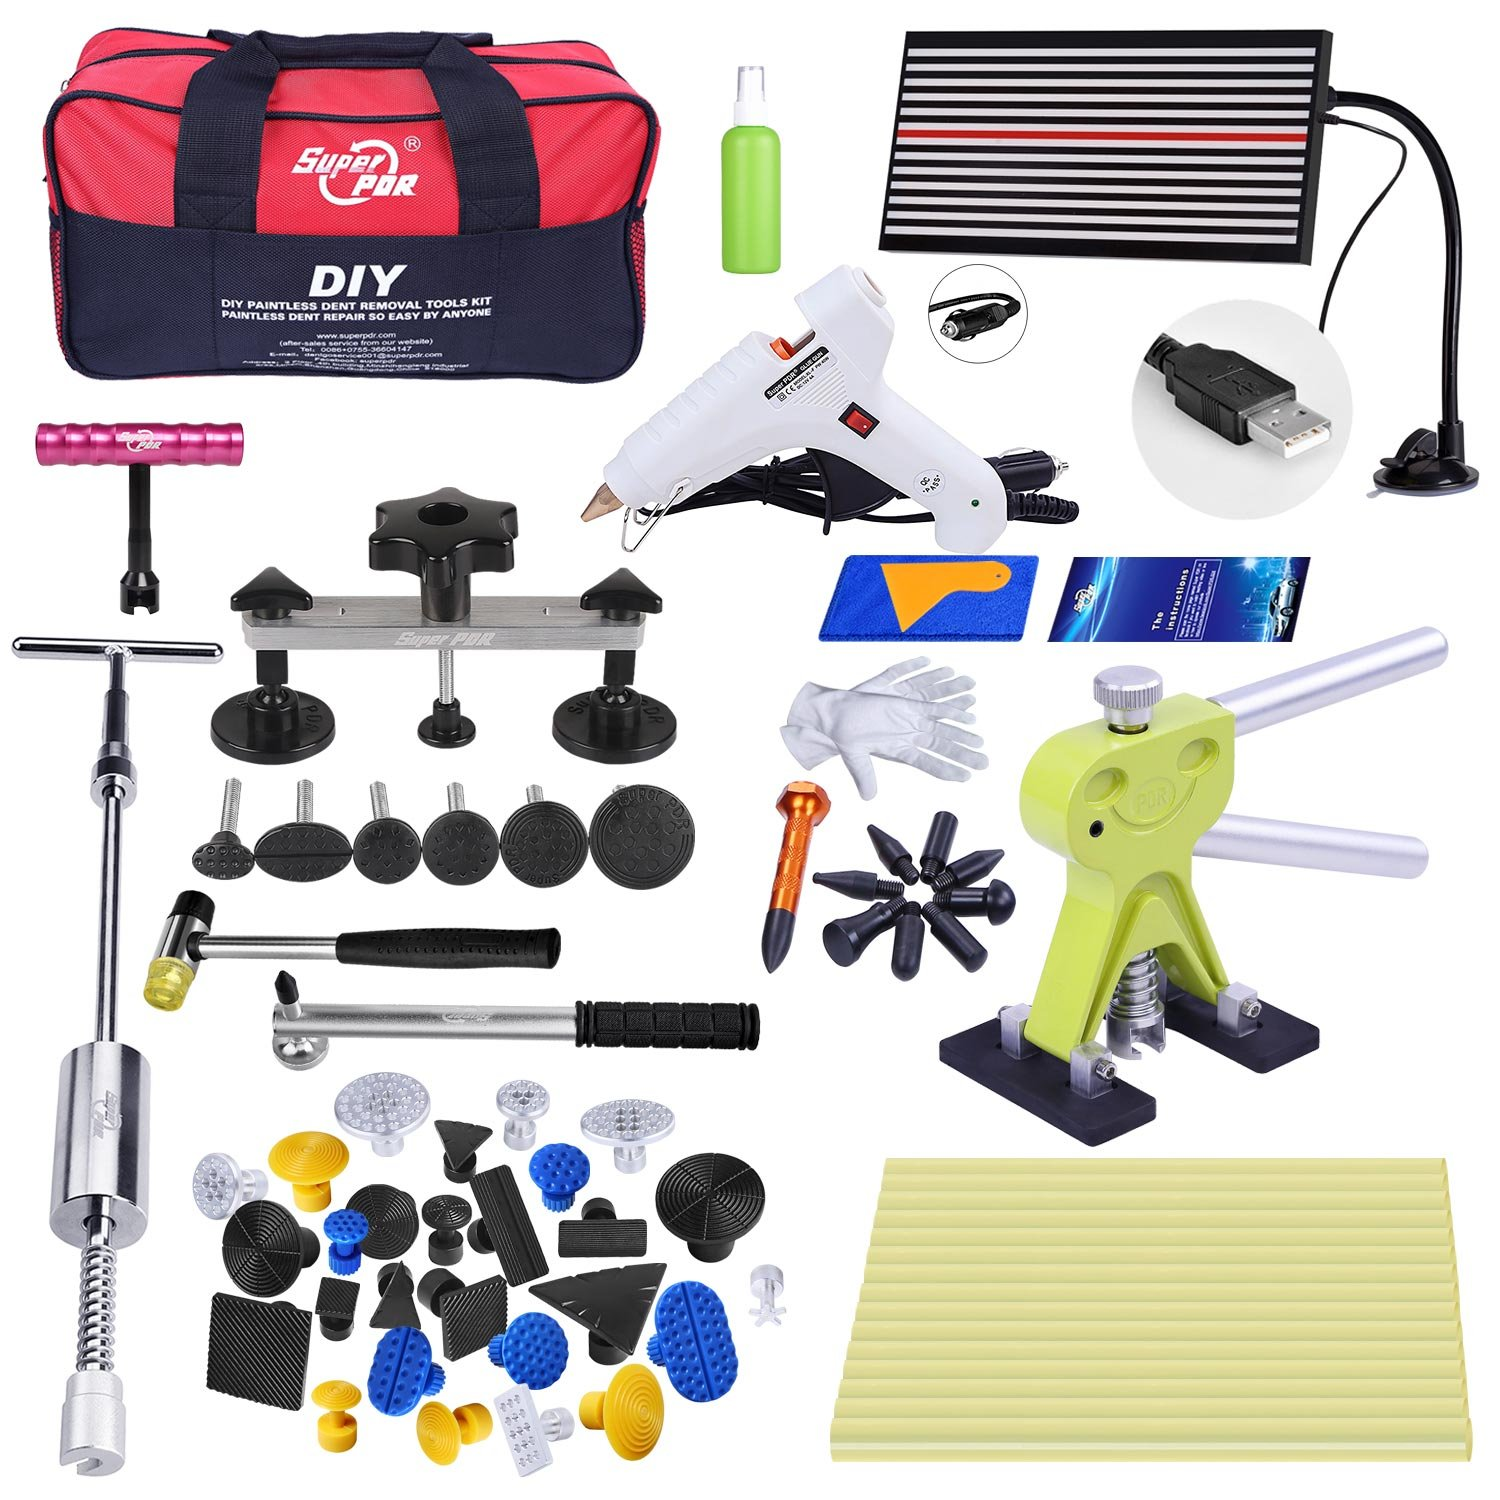 Fly5D 45pcs DIY Paintless Auto Car Truck Dent Repair Remover Tools Dent Removal Puller Kit for Home Use Stainless Steel Door Hail Damage Pops a Dent Tools Set